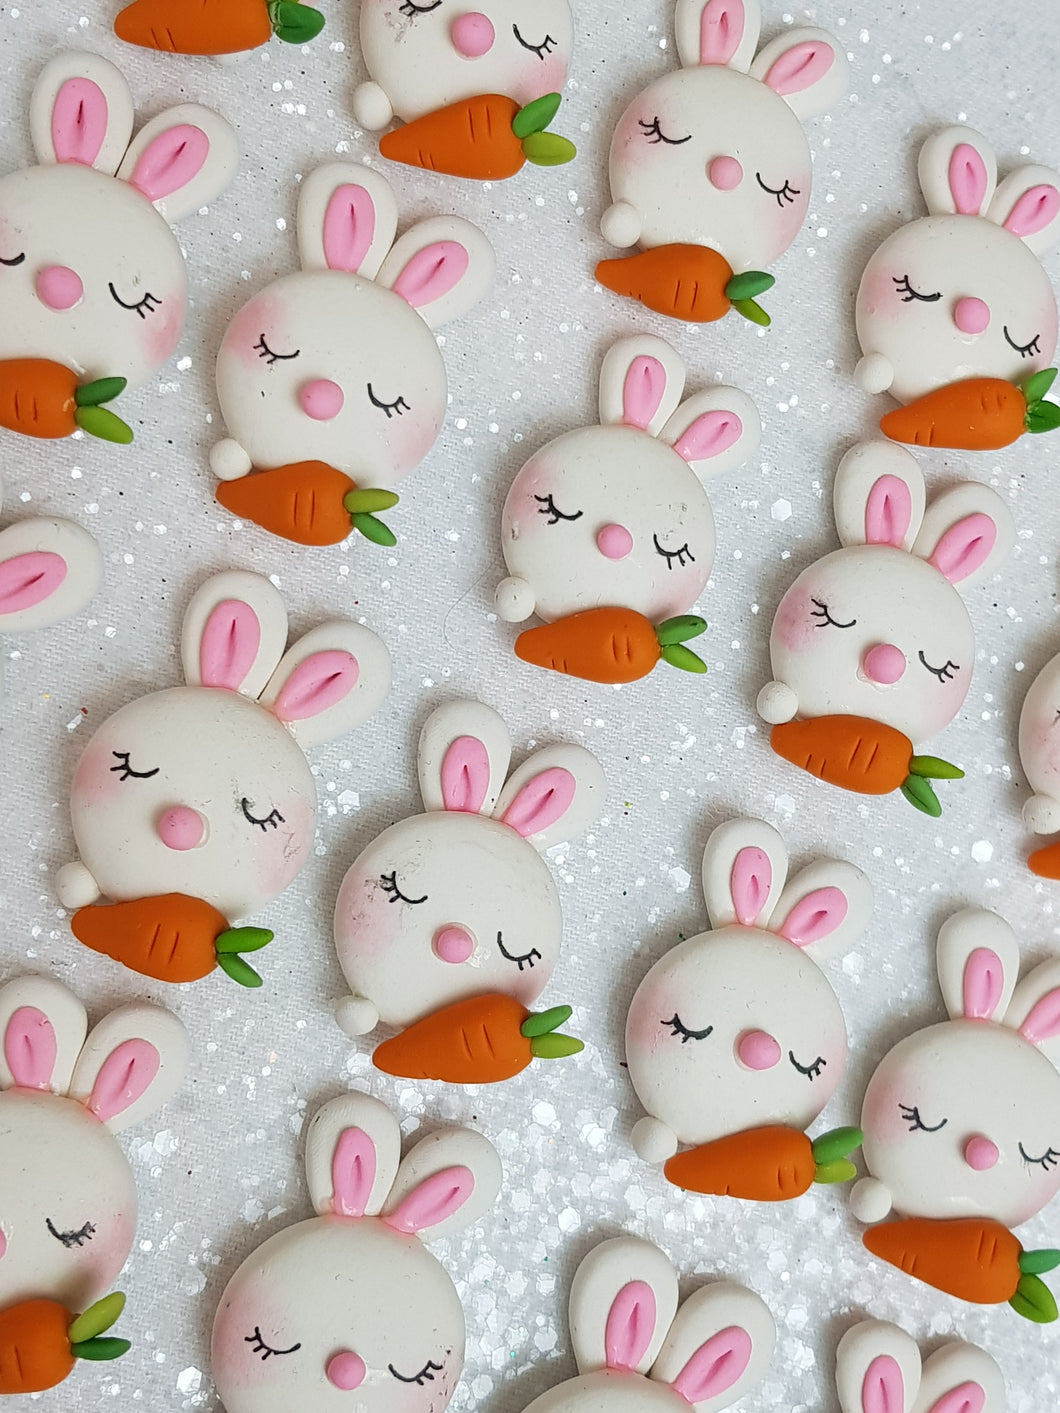 Clay Charm Embellishment - NEW BUNNY AND CARROT - Crafty Mood